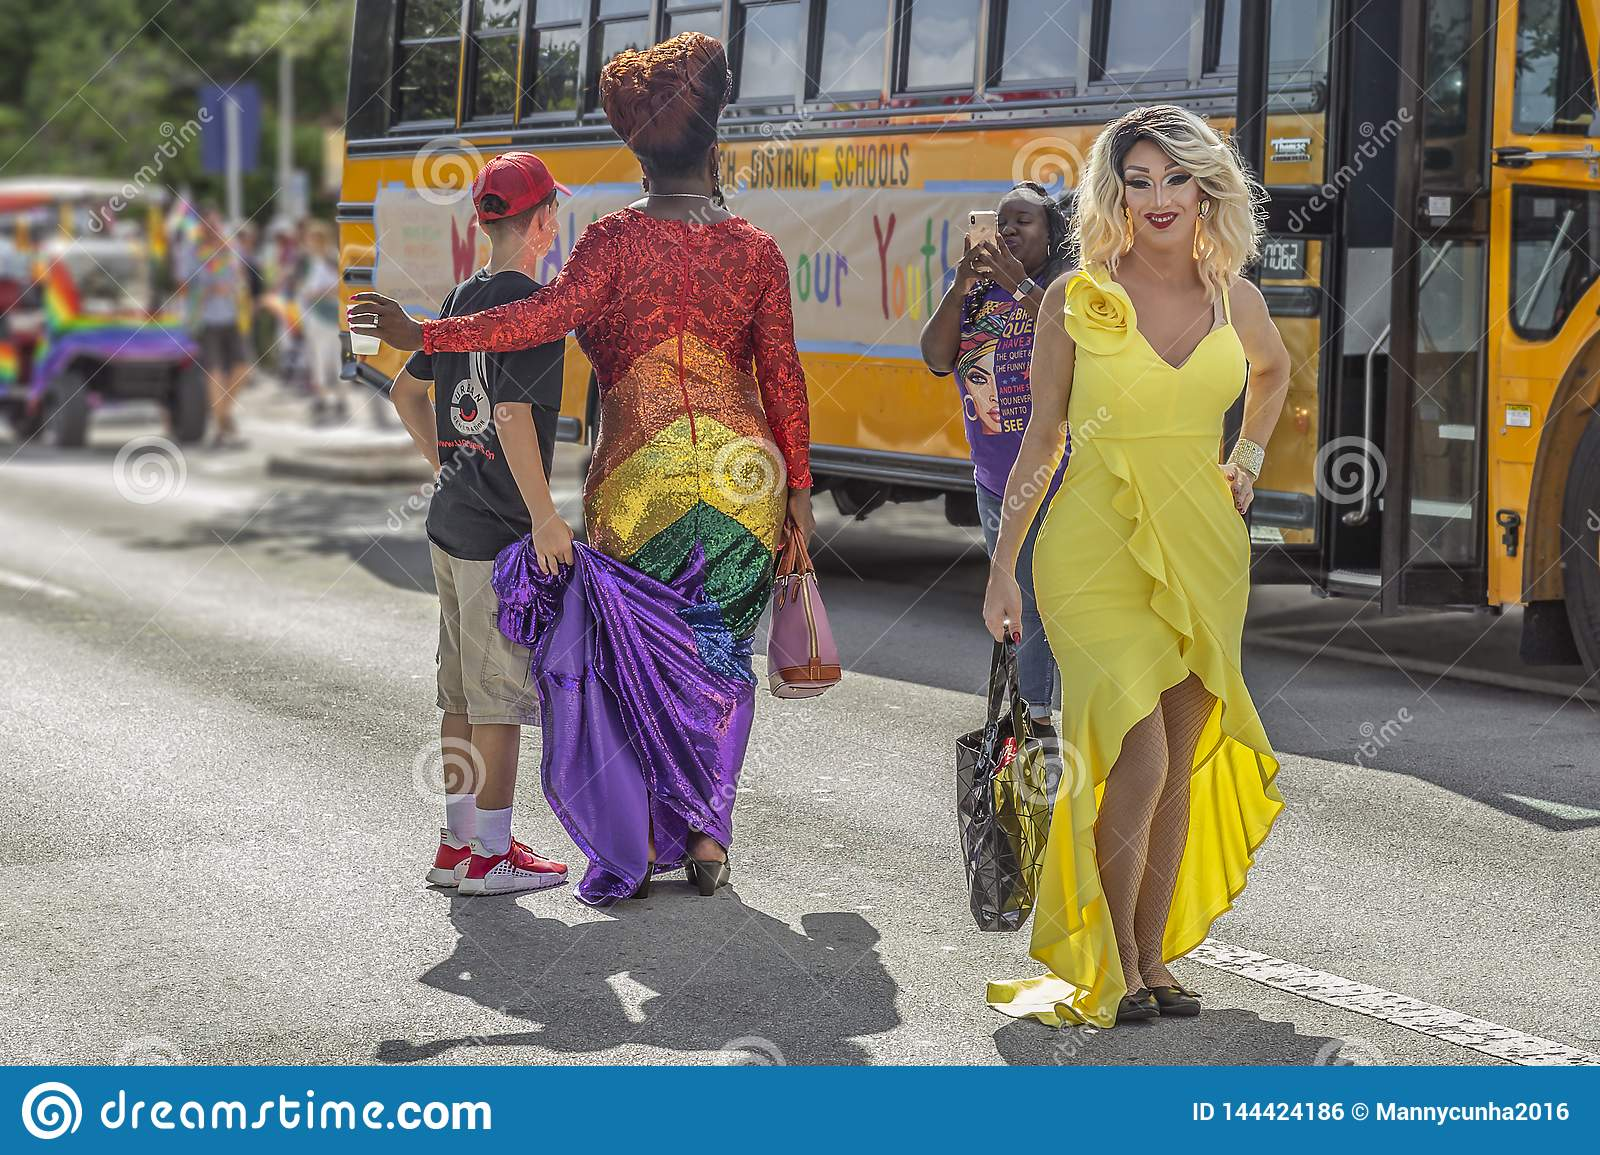 Valor do lago, Florida, EUA 31 de mar?o de 2019 antes, Palm Beach Pride Parade